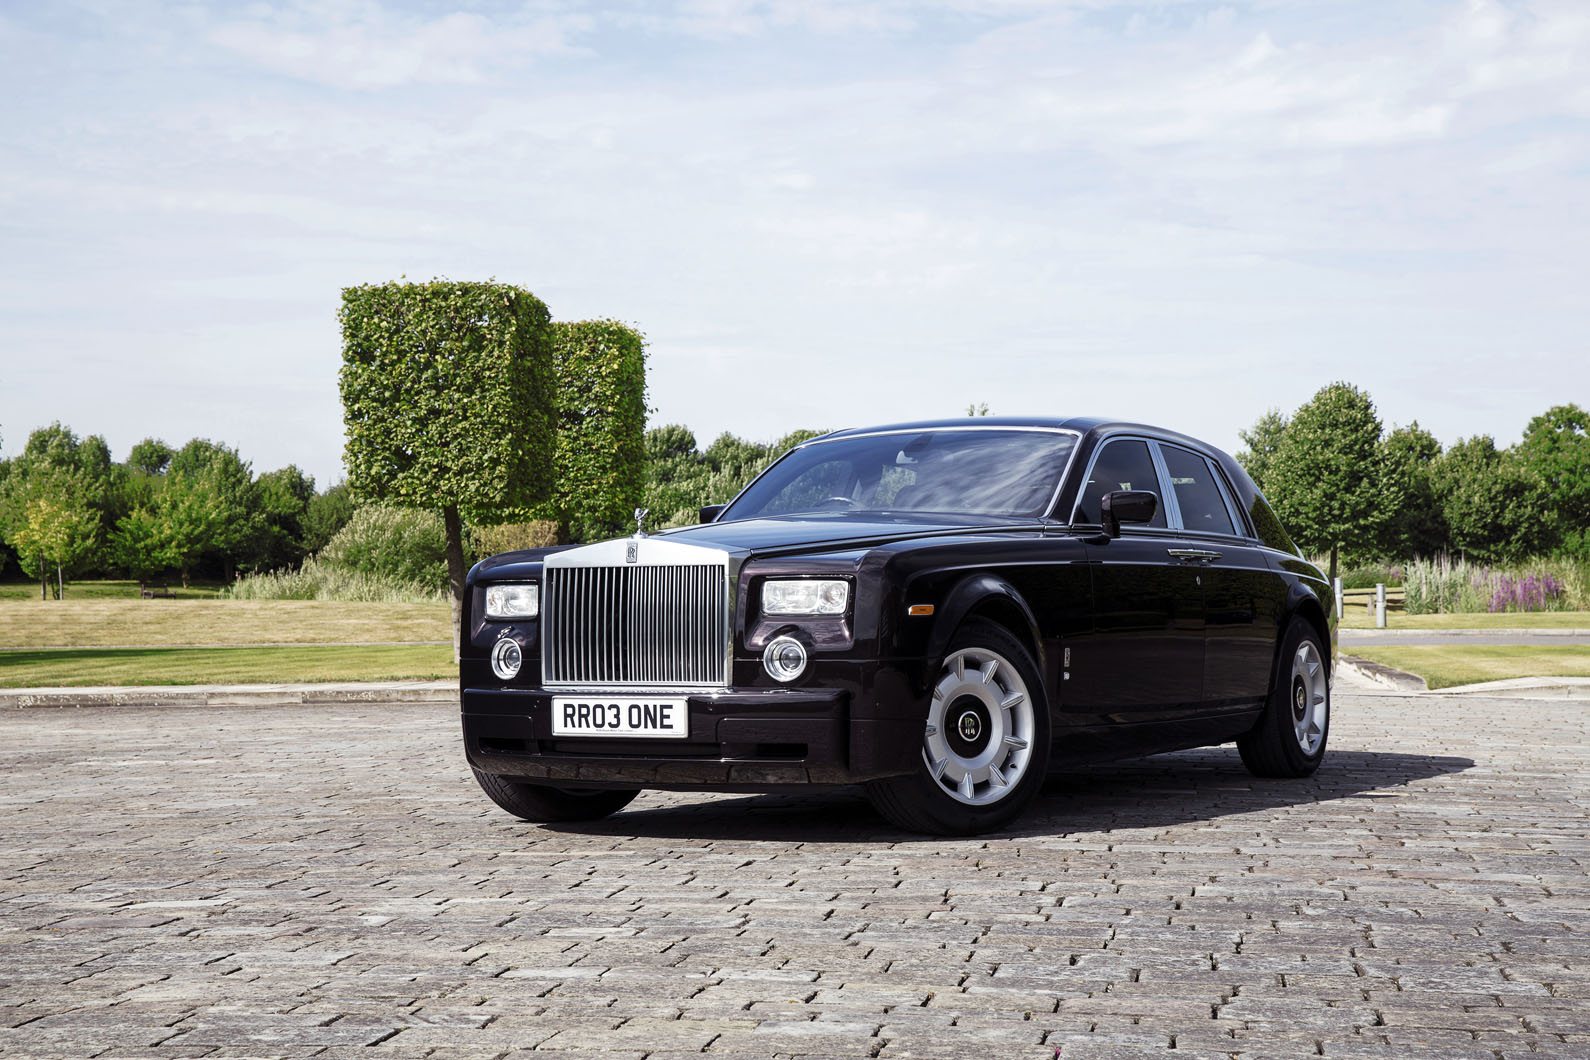 rolls royce phantom eight generations of luxury autocar. Black Bedroom Furniture Sets. Home Design Ideas